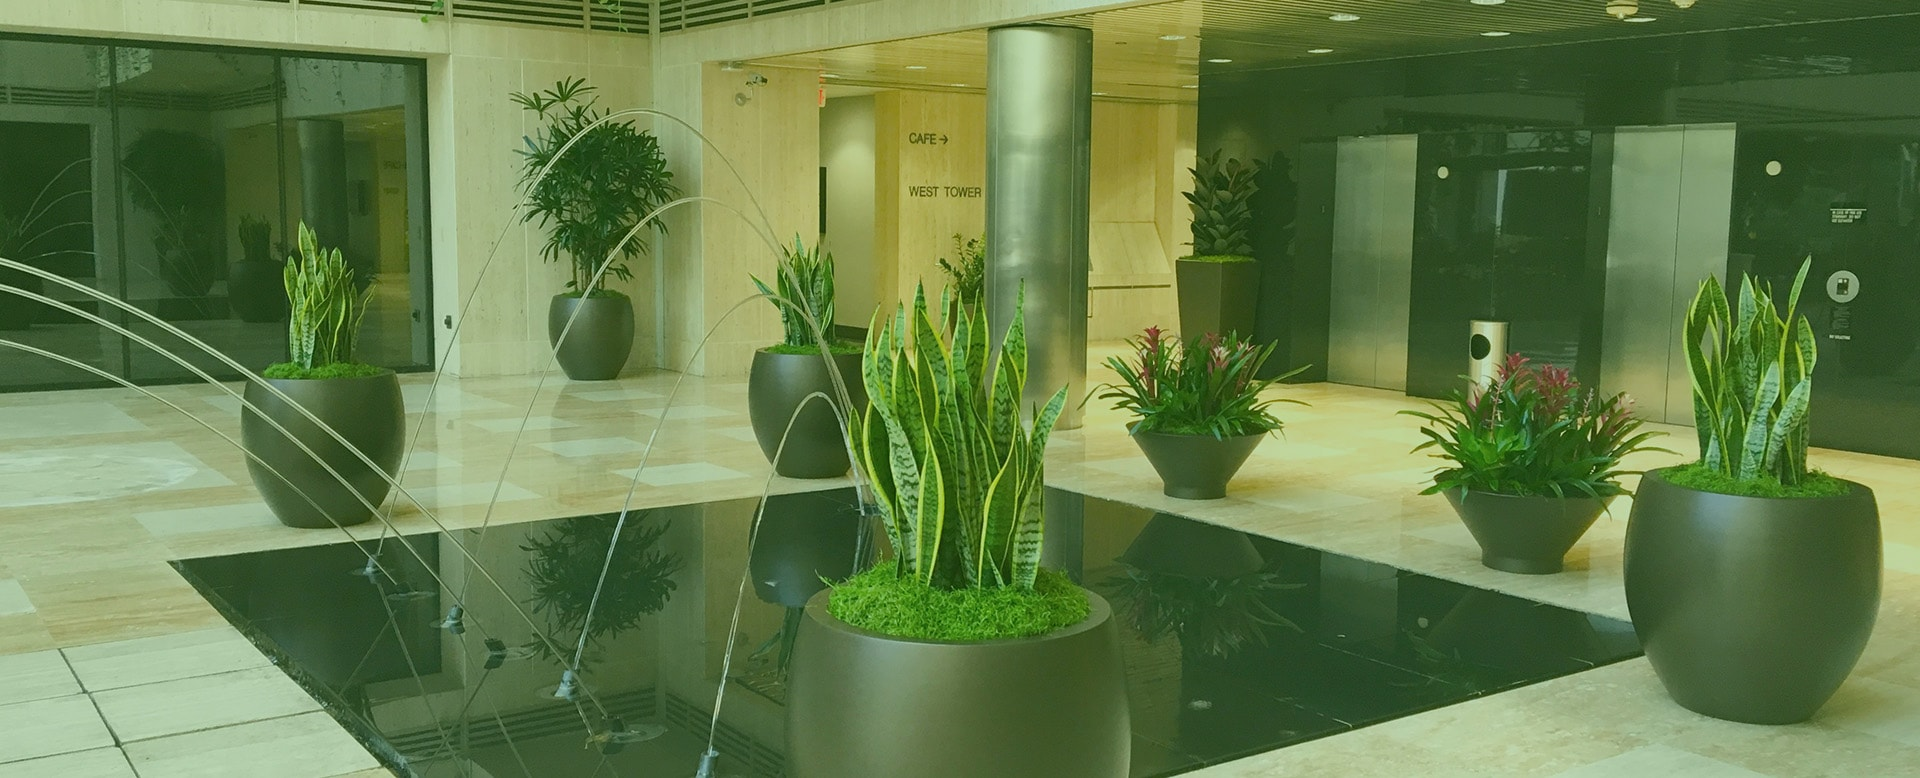 main image interior plant landscaping